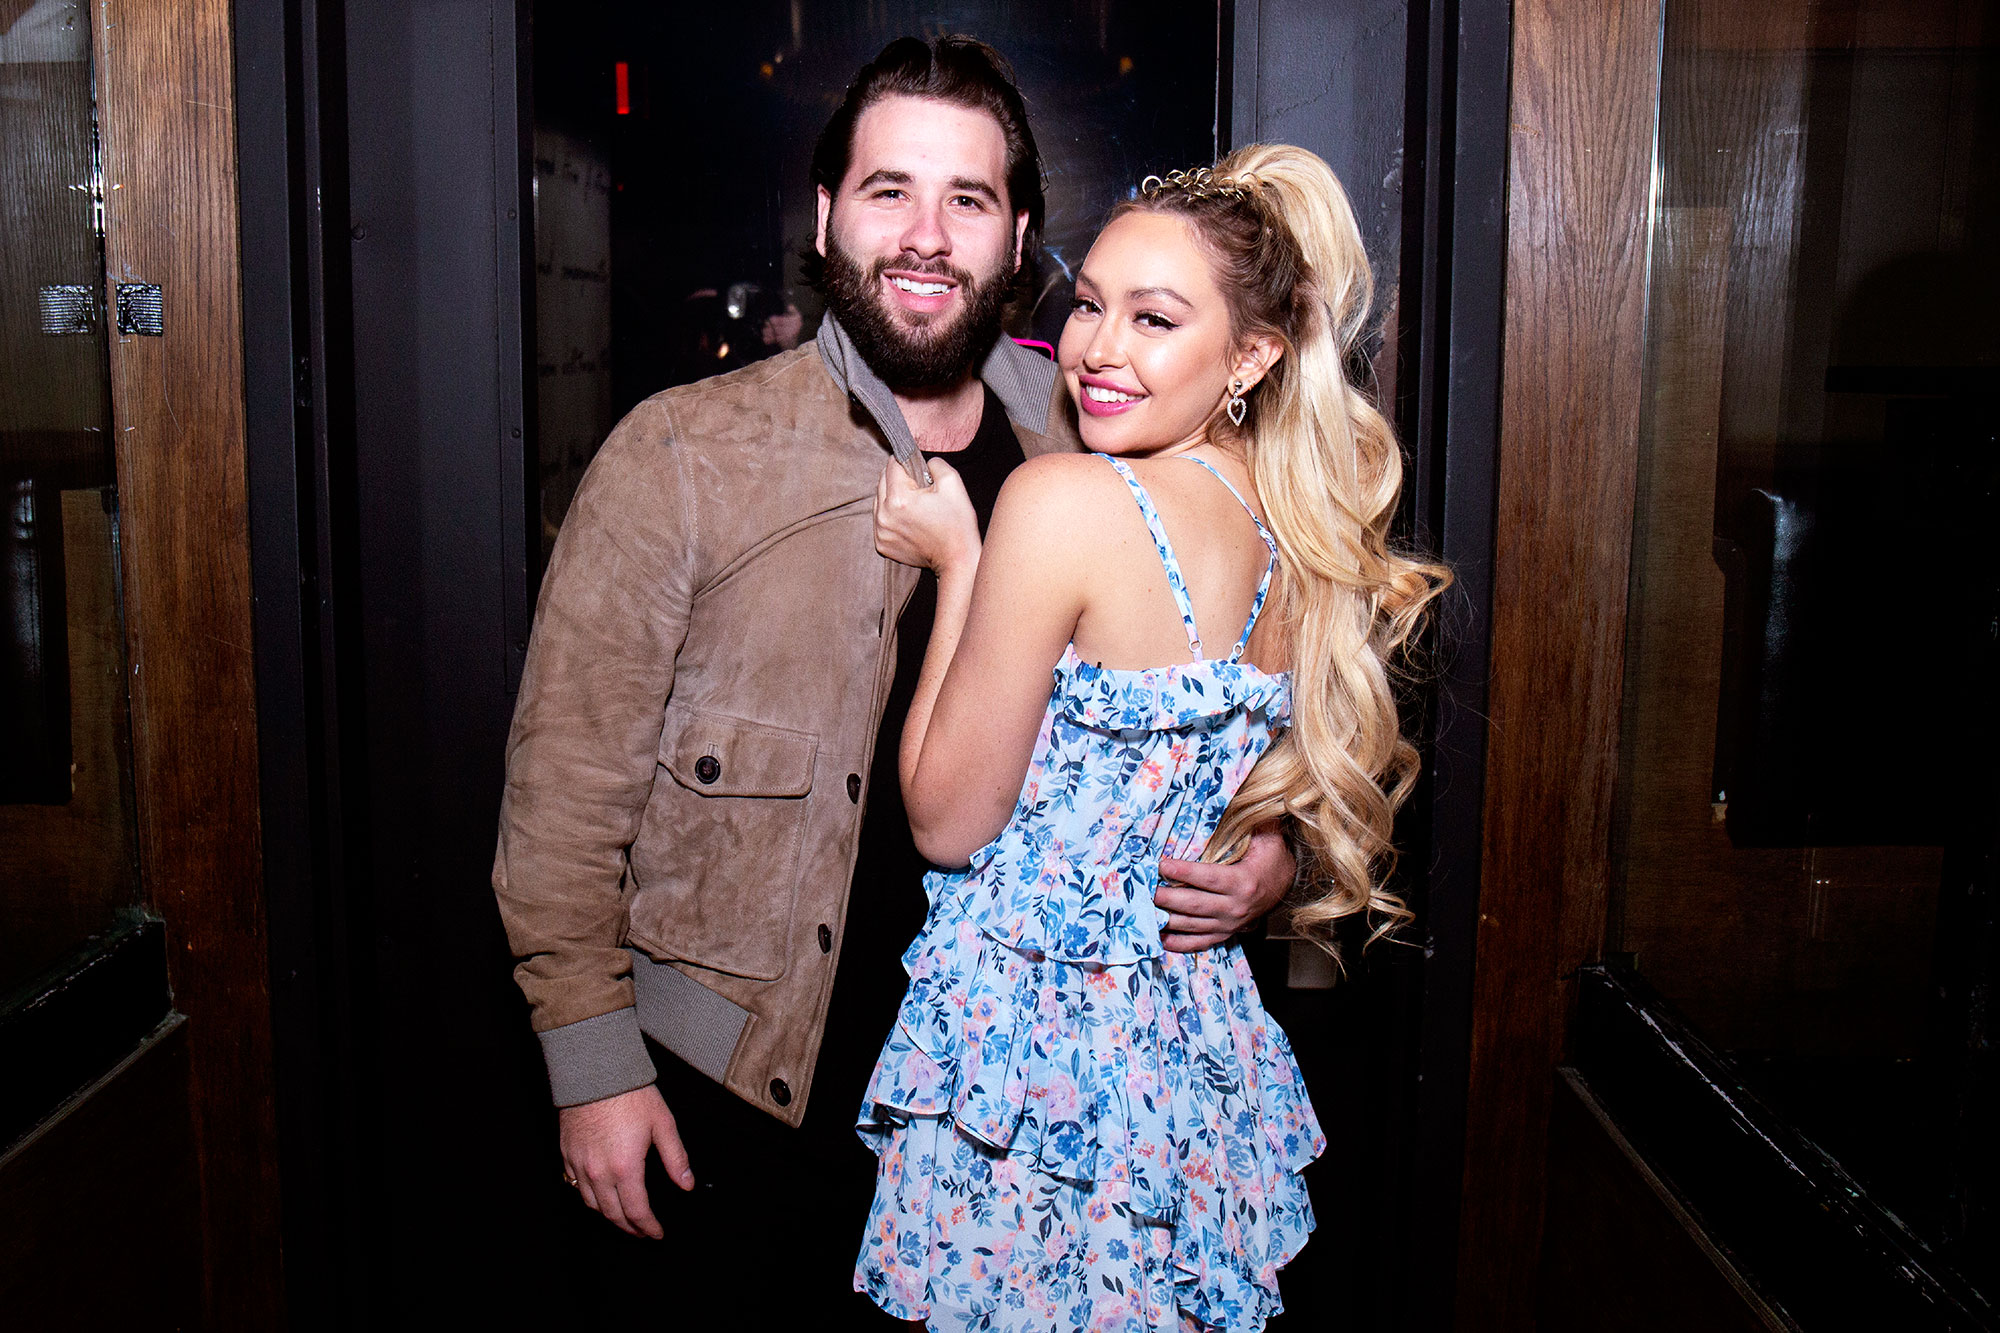 Jon Yunger and Corinne Olympio - Jon Yunger and Corinne Olympios at 1OAK for her birthday celebration on November 10, 2018 in New York City.